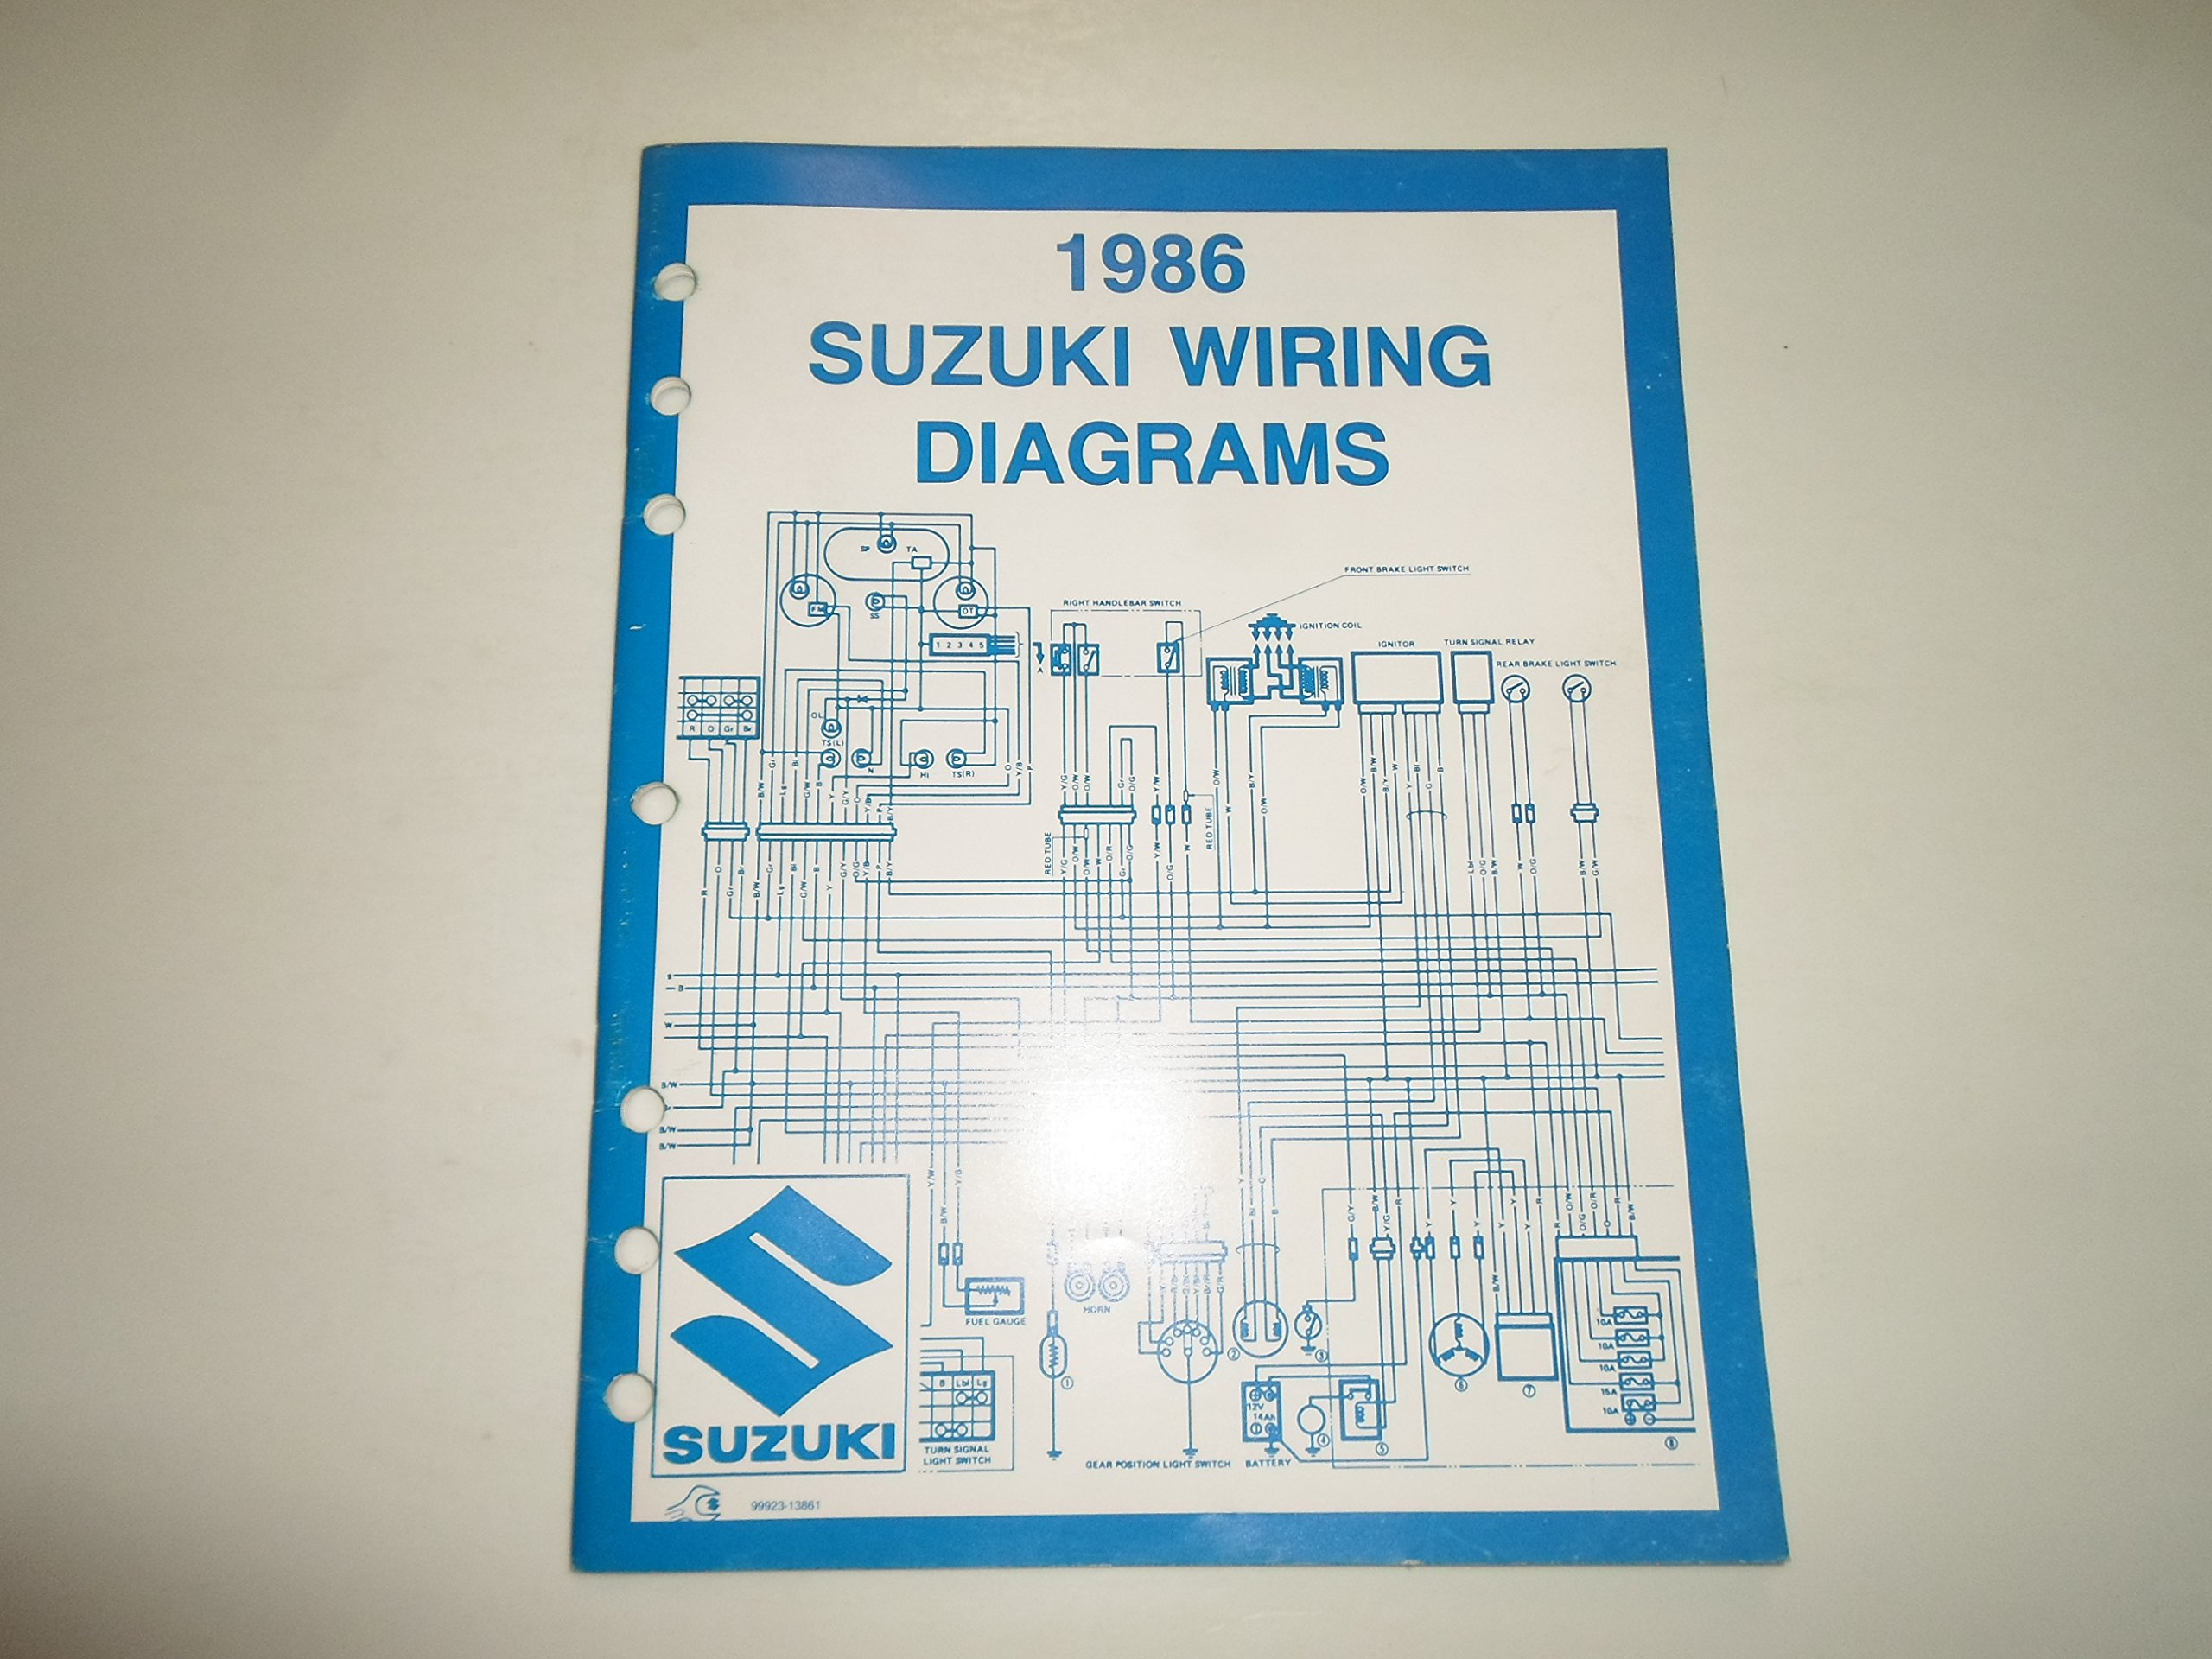 1986 Suzuki Savage Wiring Diagram Libraries Motorcycle Diagrams Free Trusted Diagramsuzuki Intruder 1500 Diagramt Library Spdt Switch